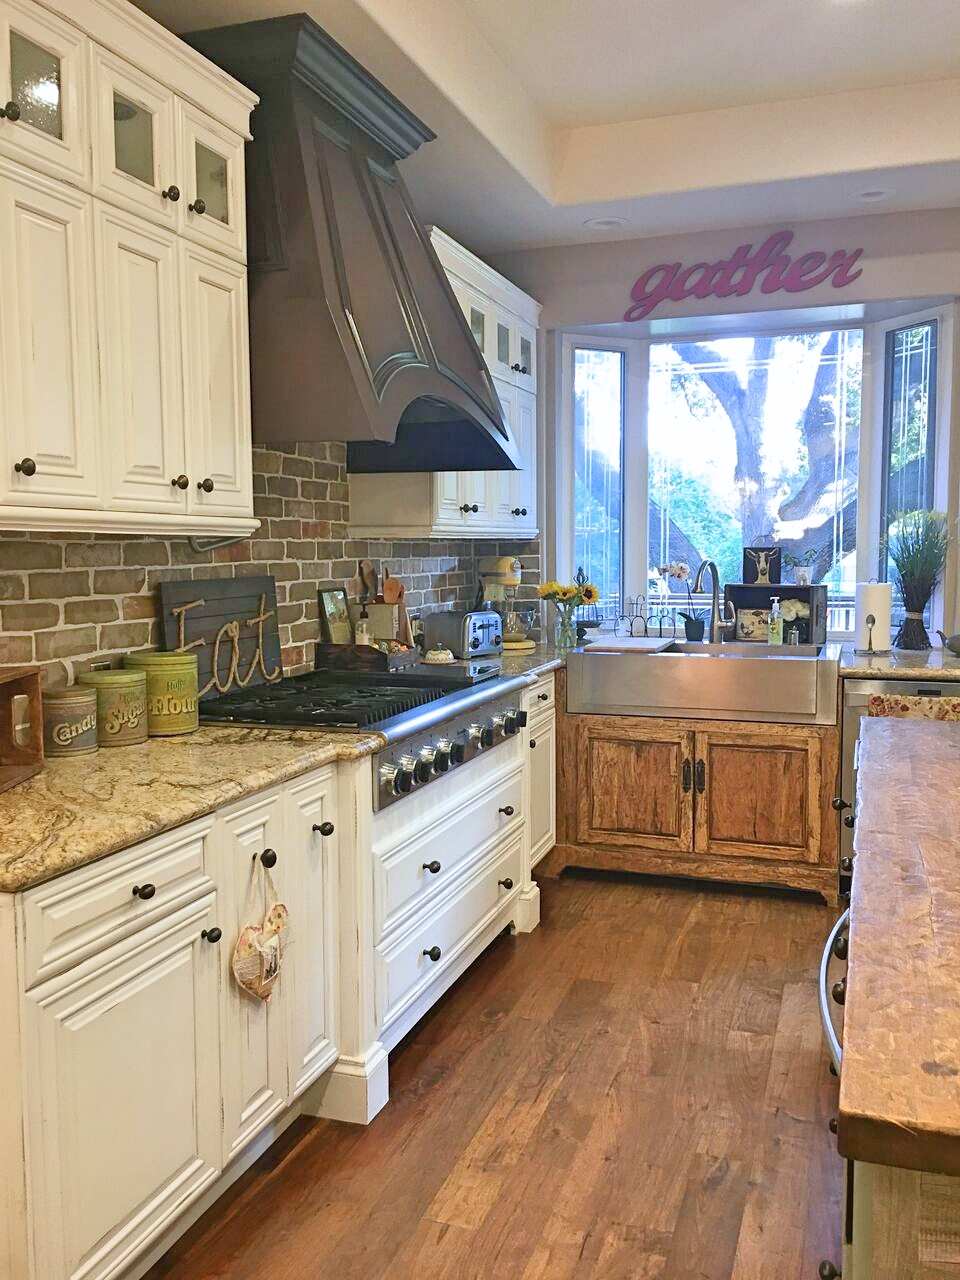 Tour Tuesday: The Privett Kitchen and Outdoor Living Room